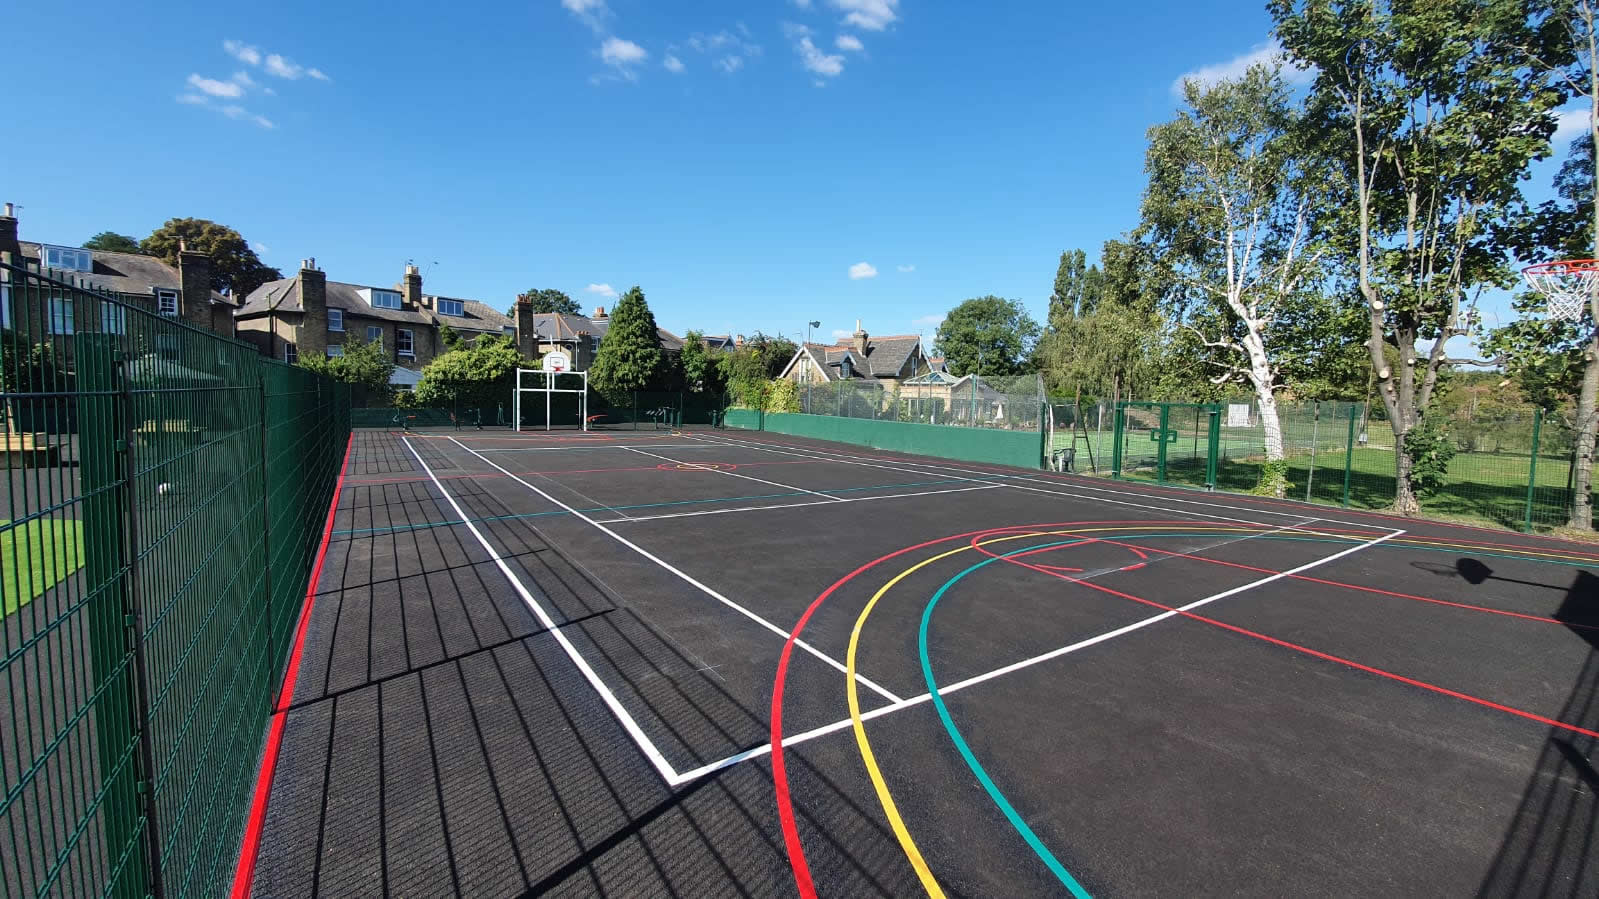 muga-playground-markings-2